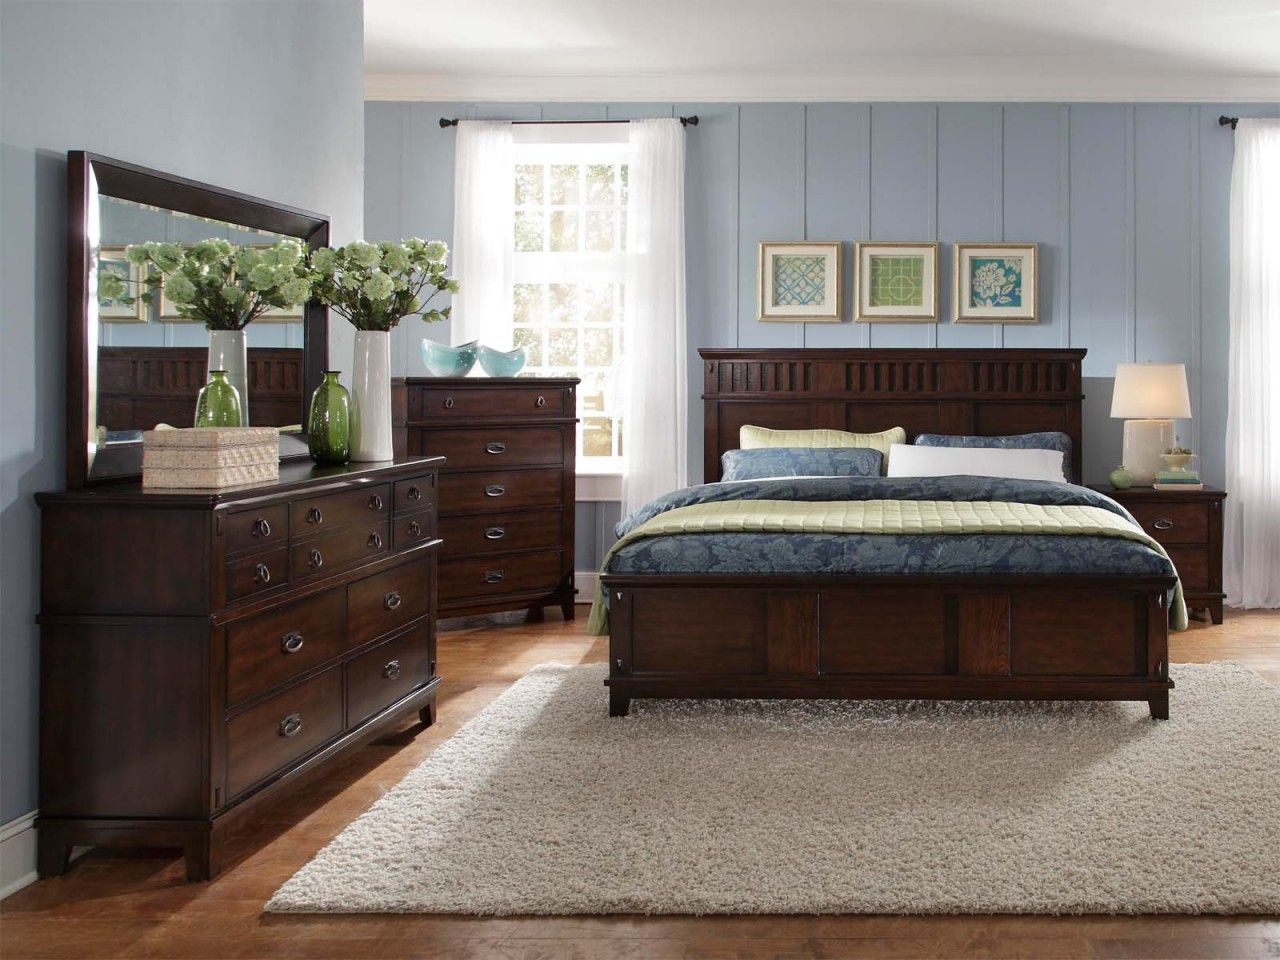 bedroom ideas brown furniture photo - 10